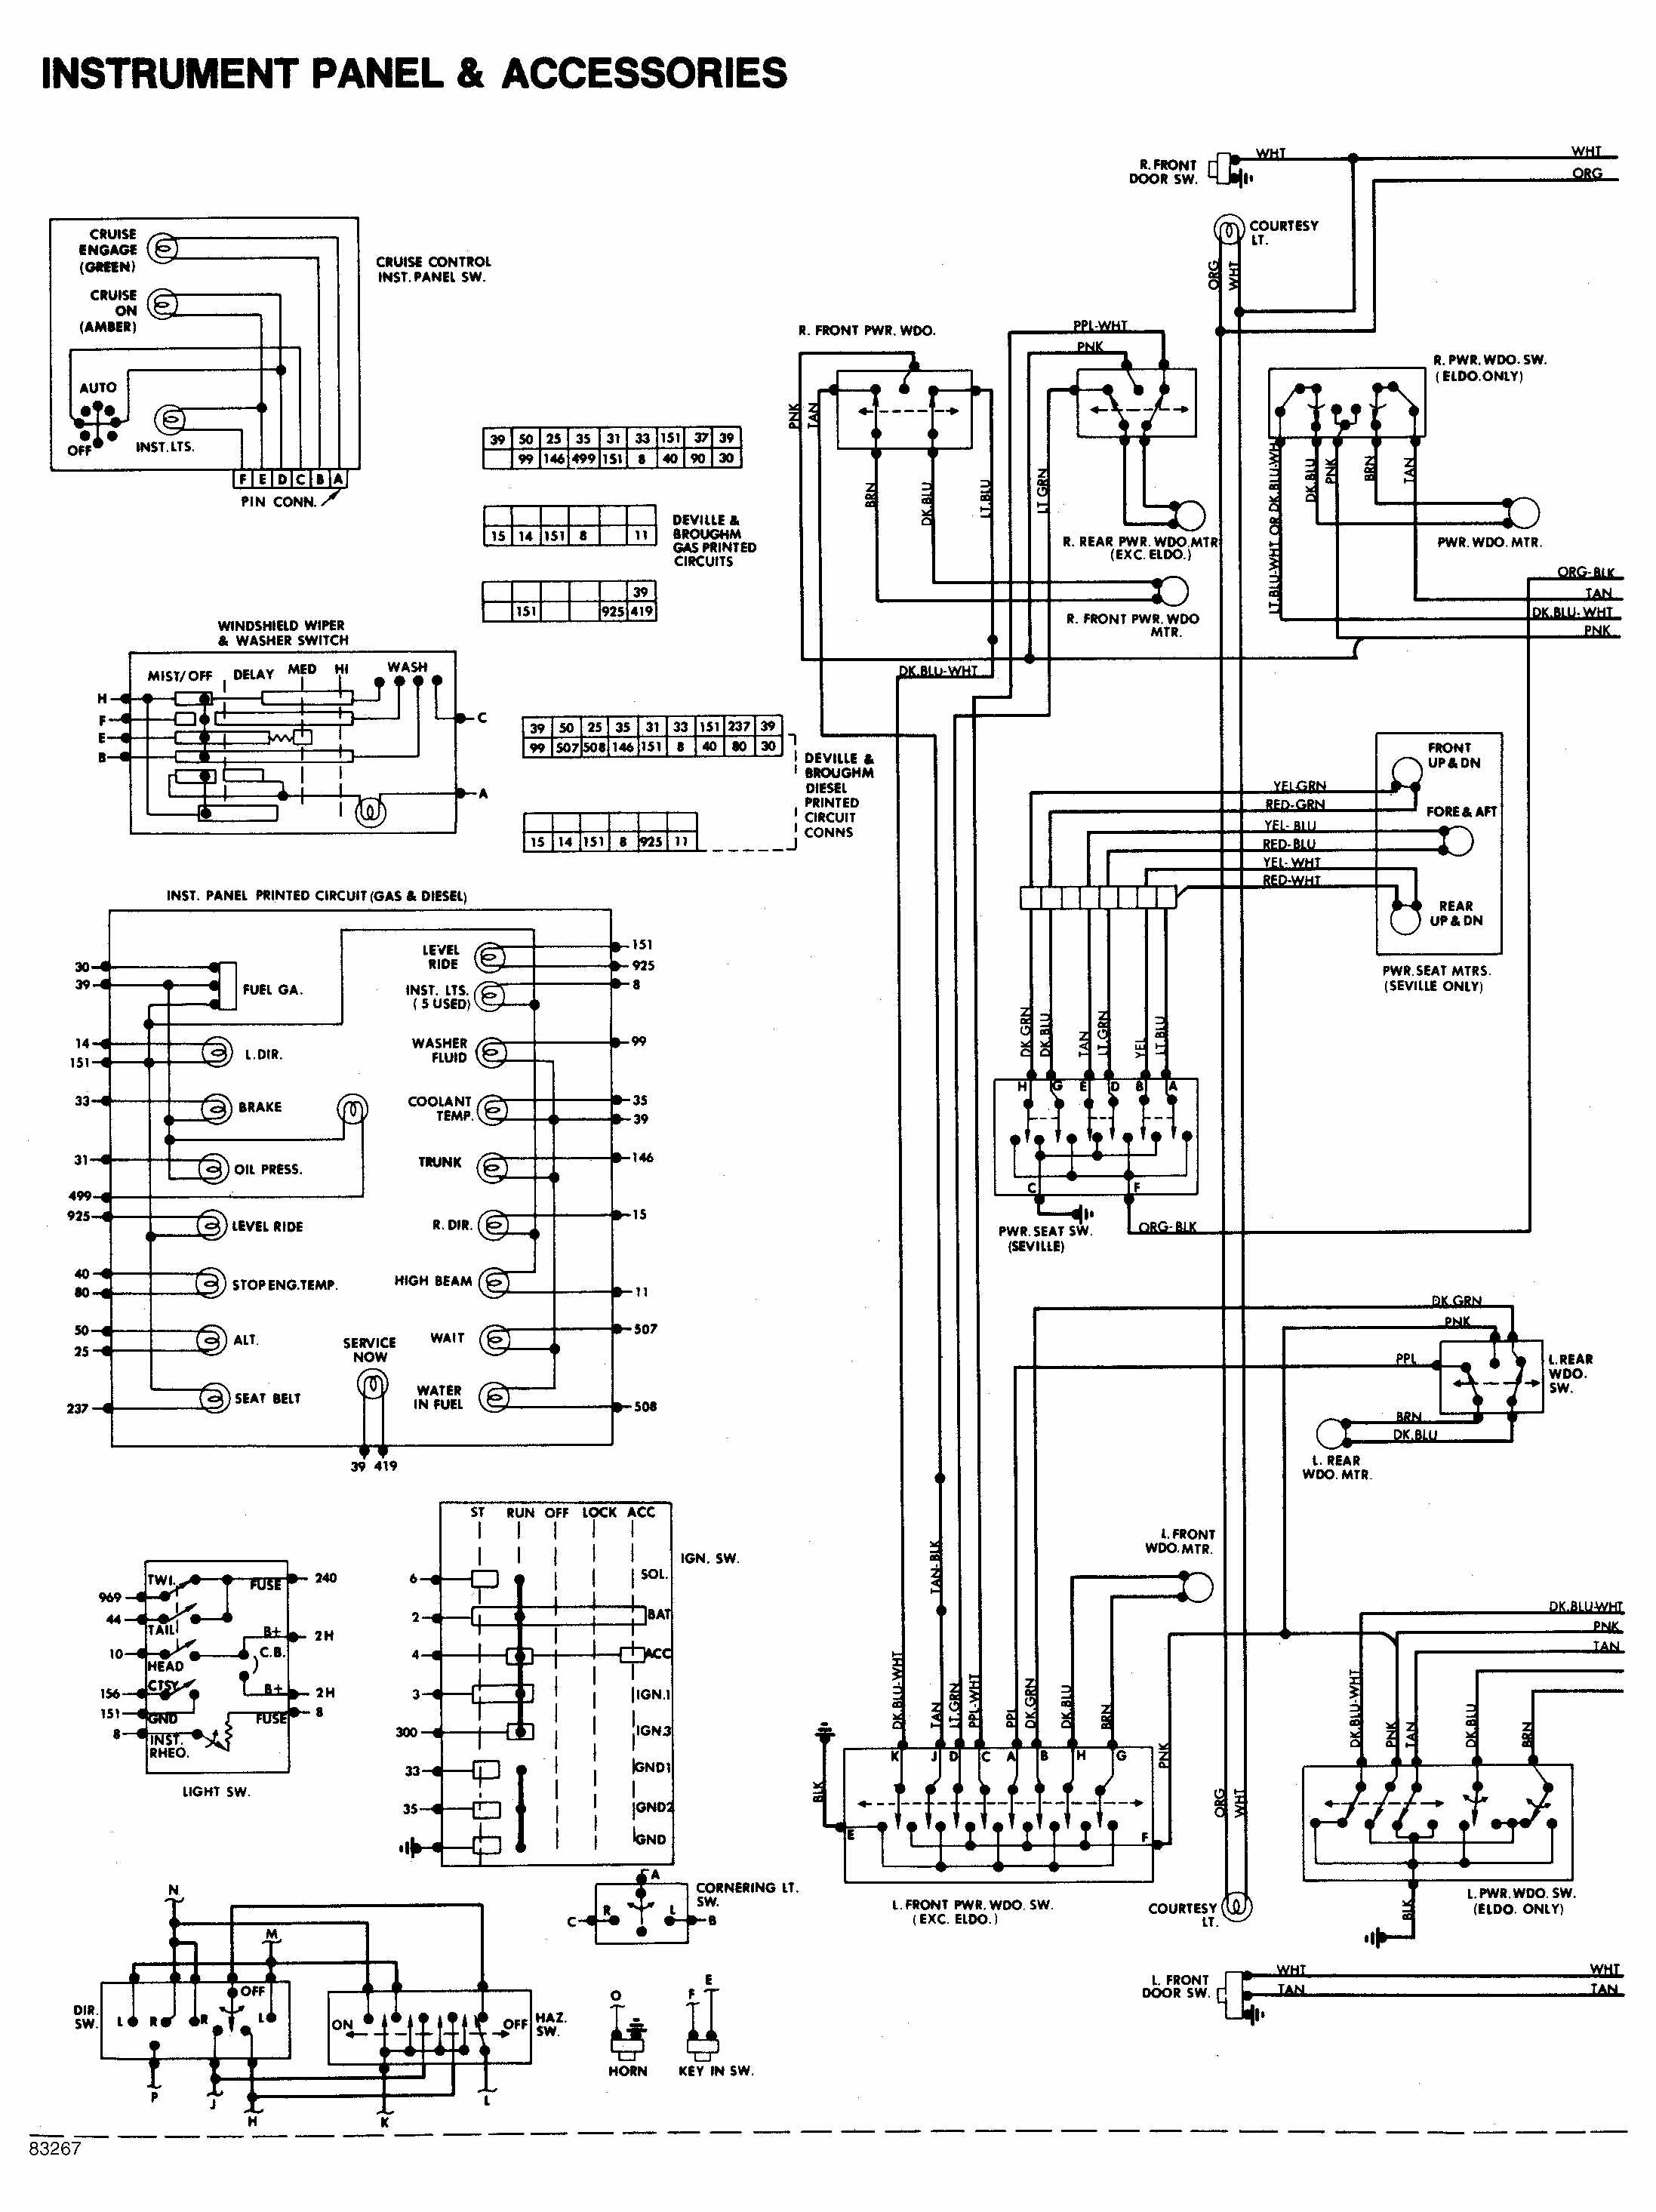 instrument panel and accessories wiring diagram of 1984 cadillac deville cadillac wiring harness ram truck wiring harness \u2022 wiring diagrams  at bakdesigns.co